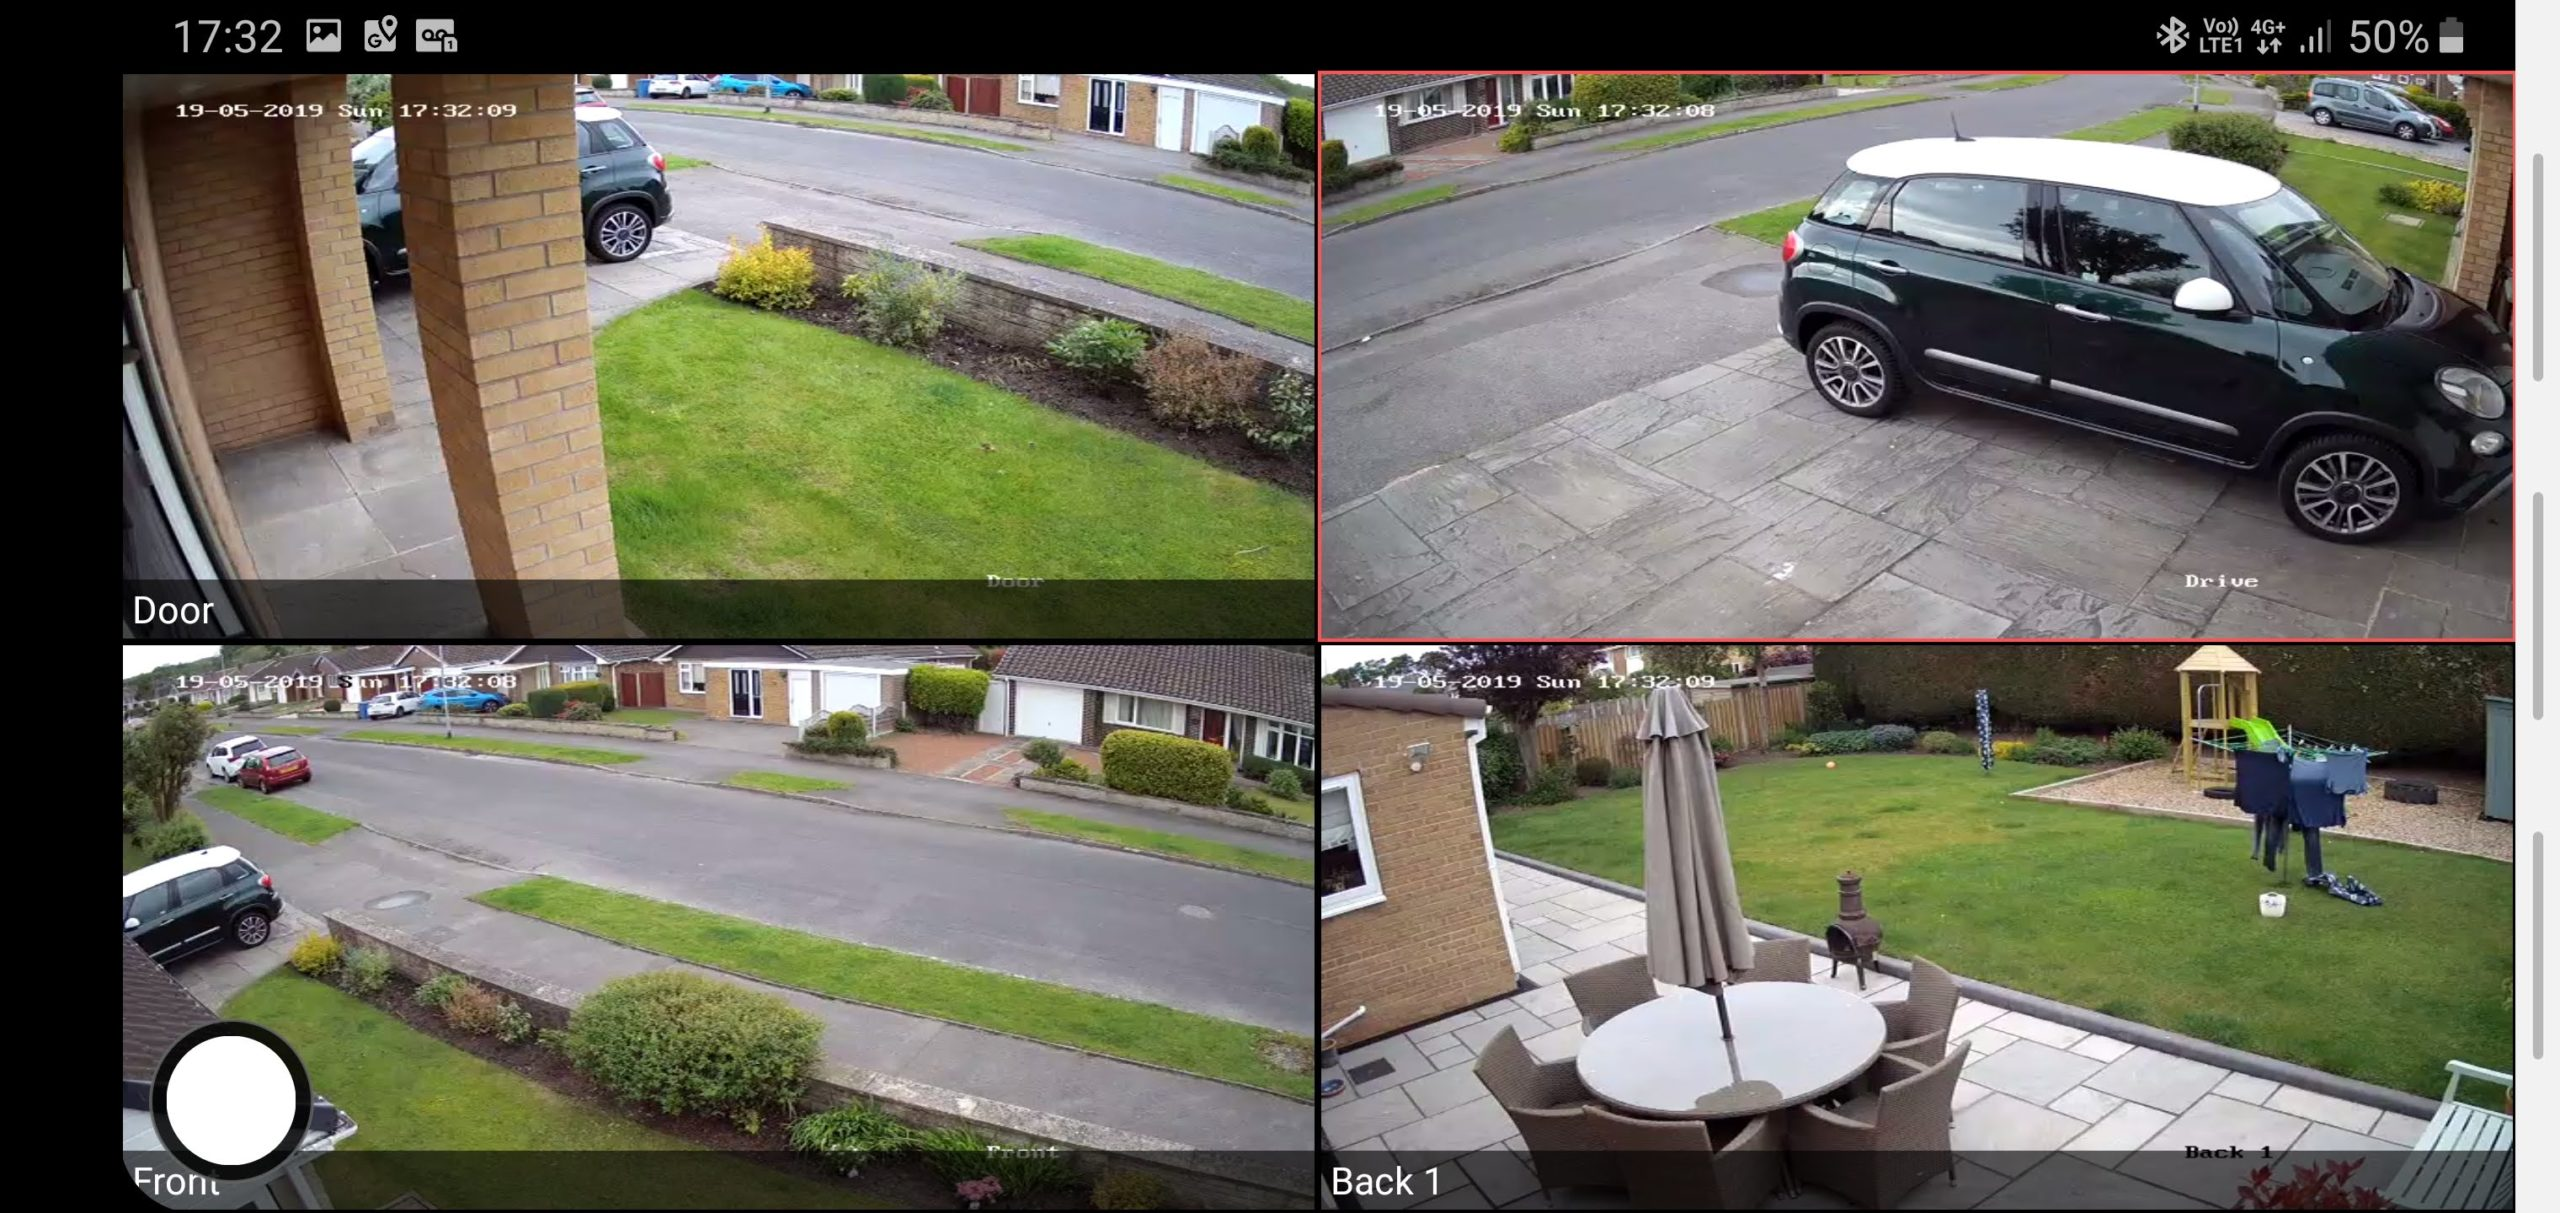 Choosing your Home CCTV – Professionally Installed or DIY? 1